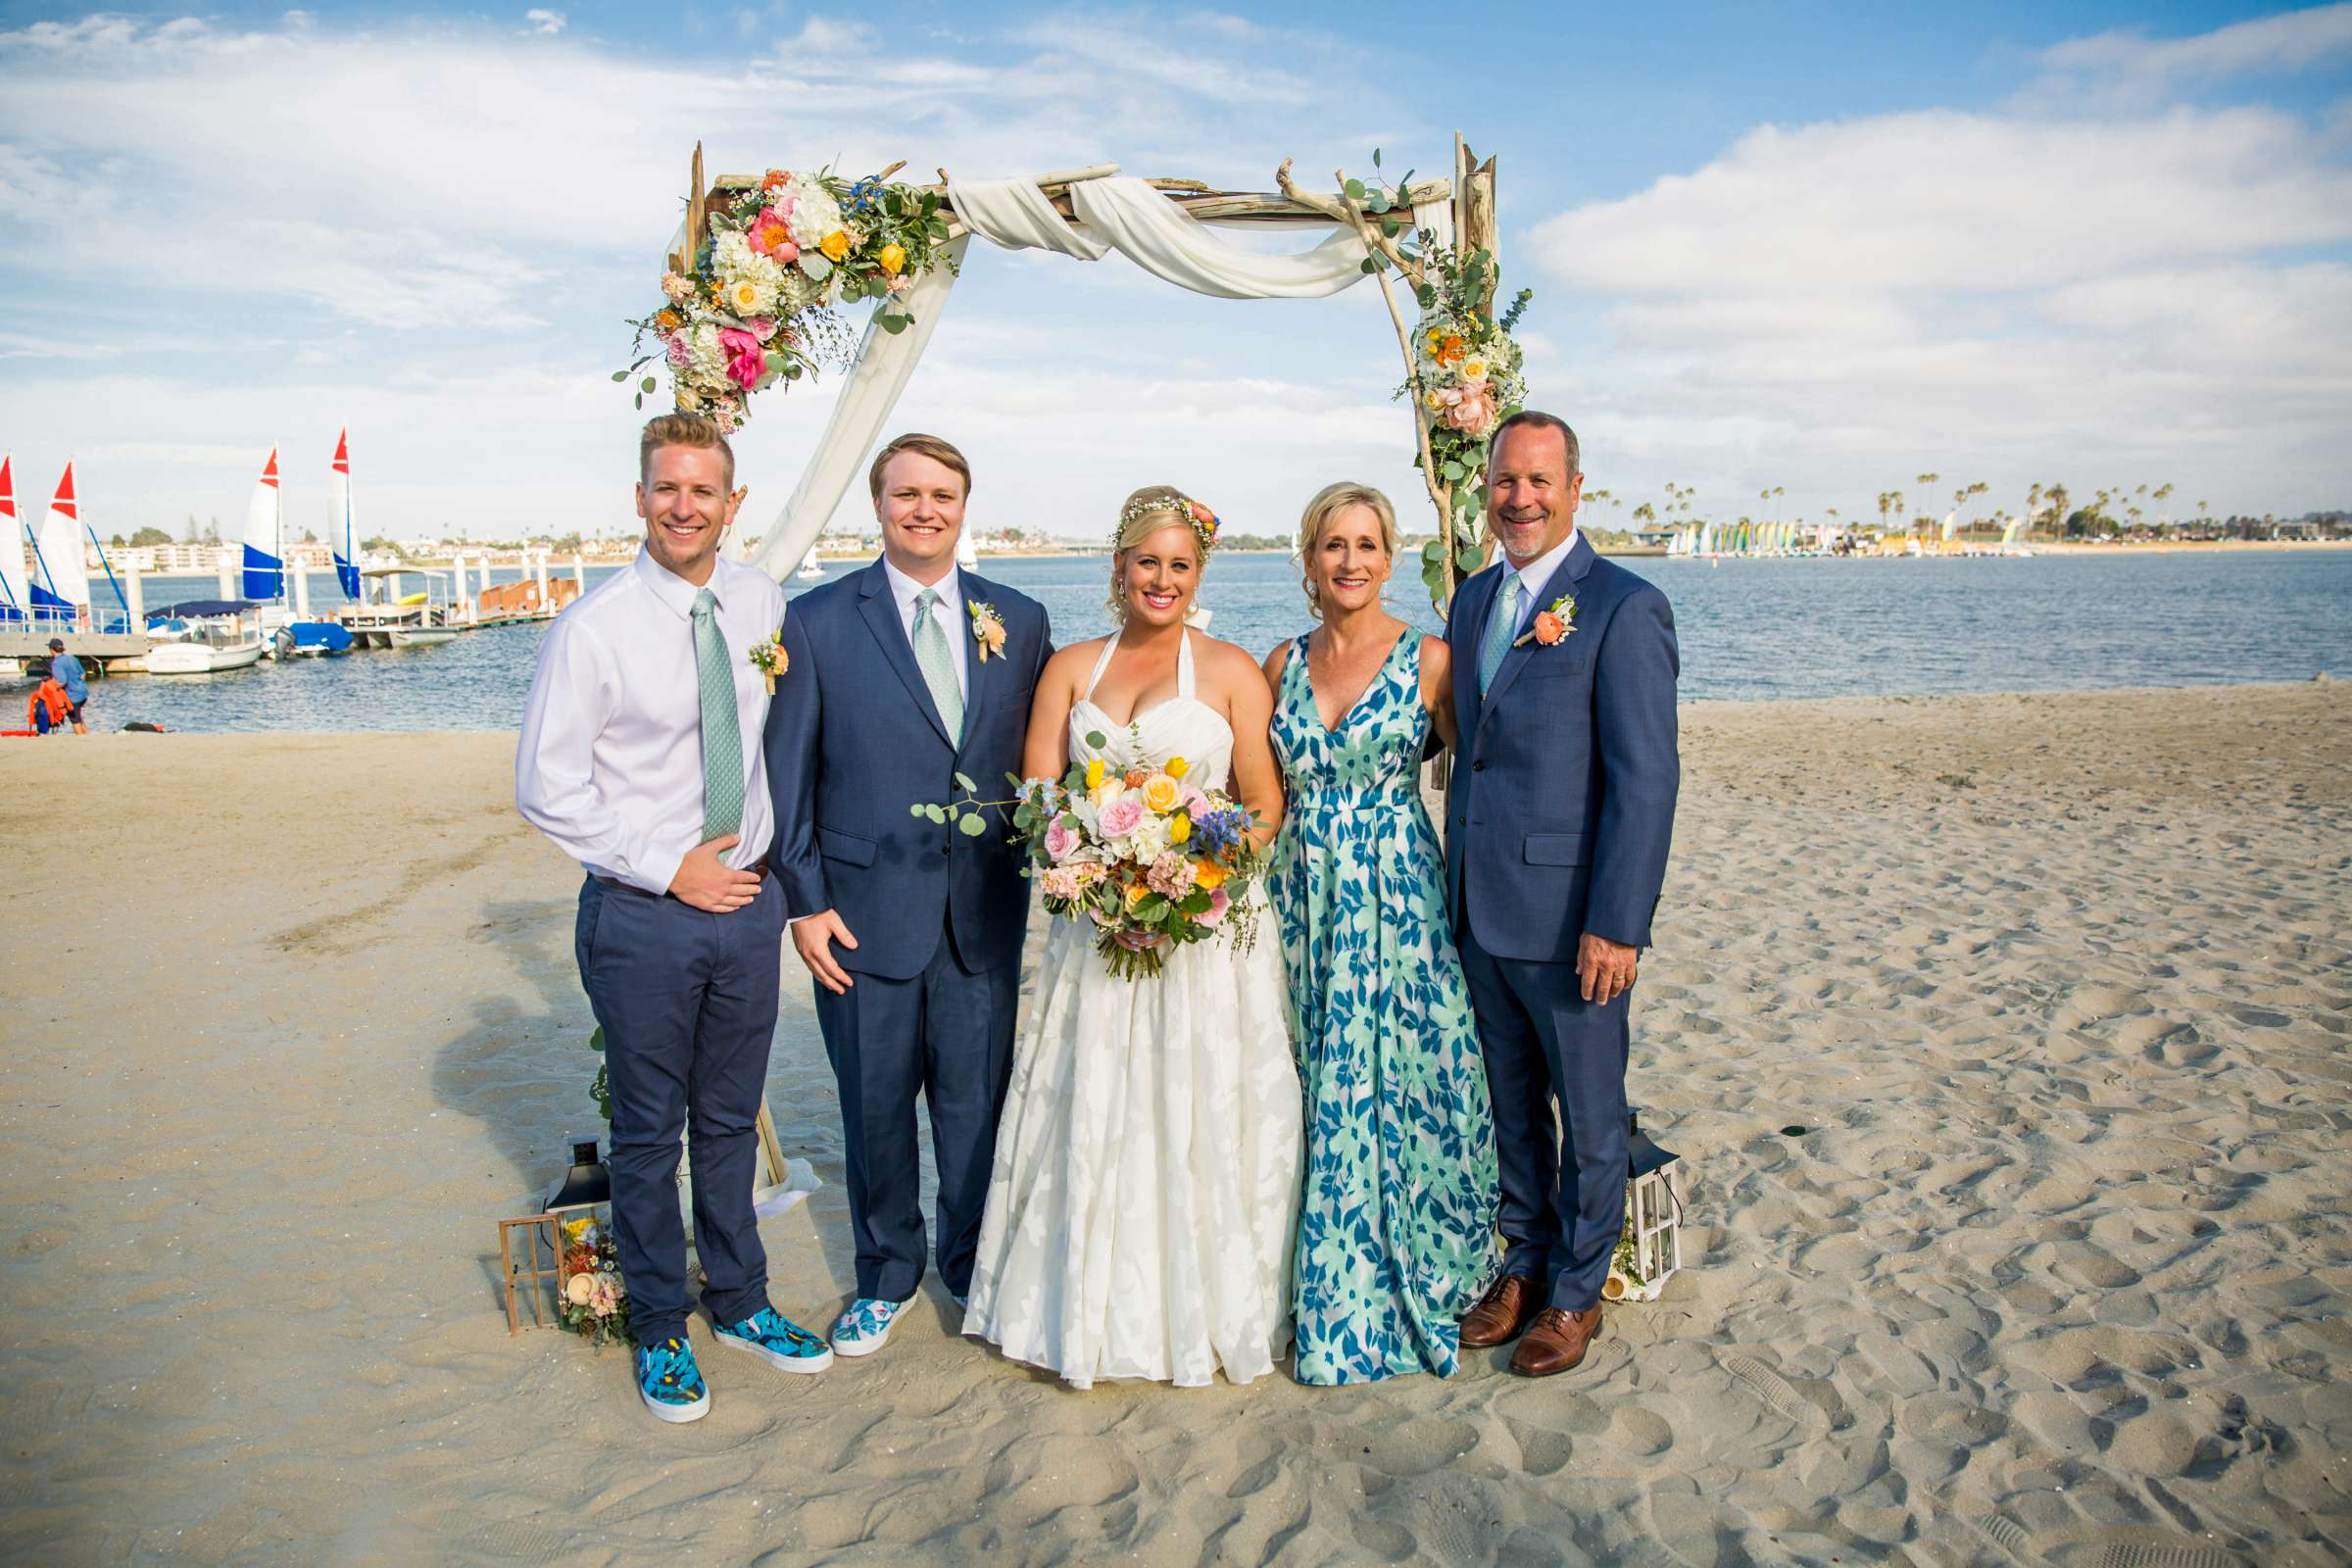 Catamaran Resort Wedding coordinated by Lavish Weddings, Brittany and David Wedding Photo #82 by True Photography